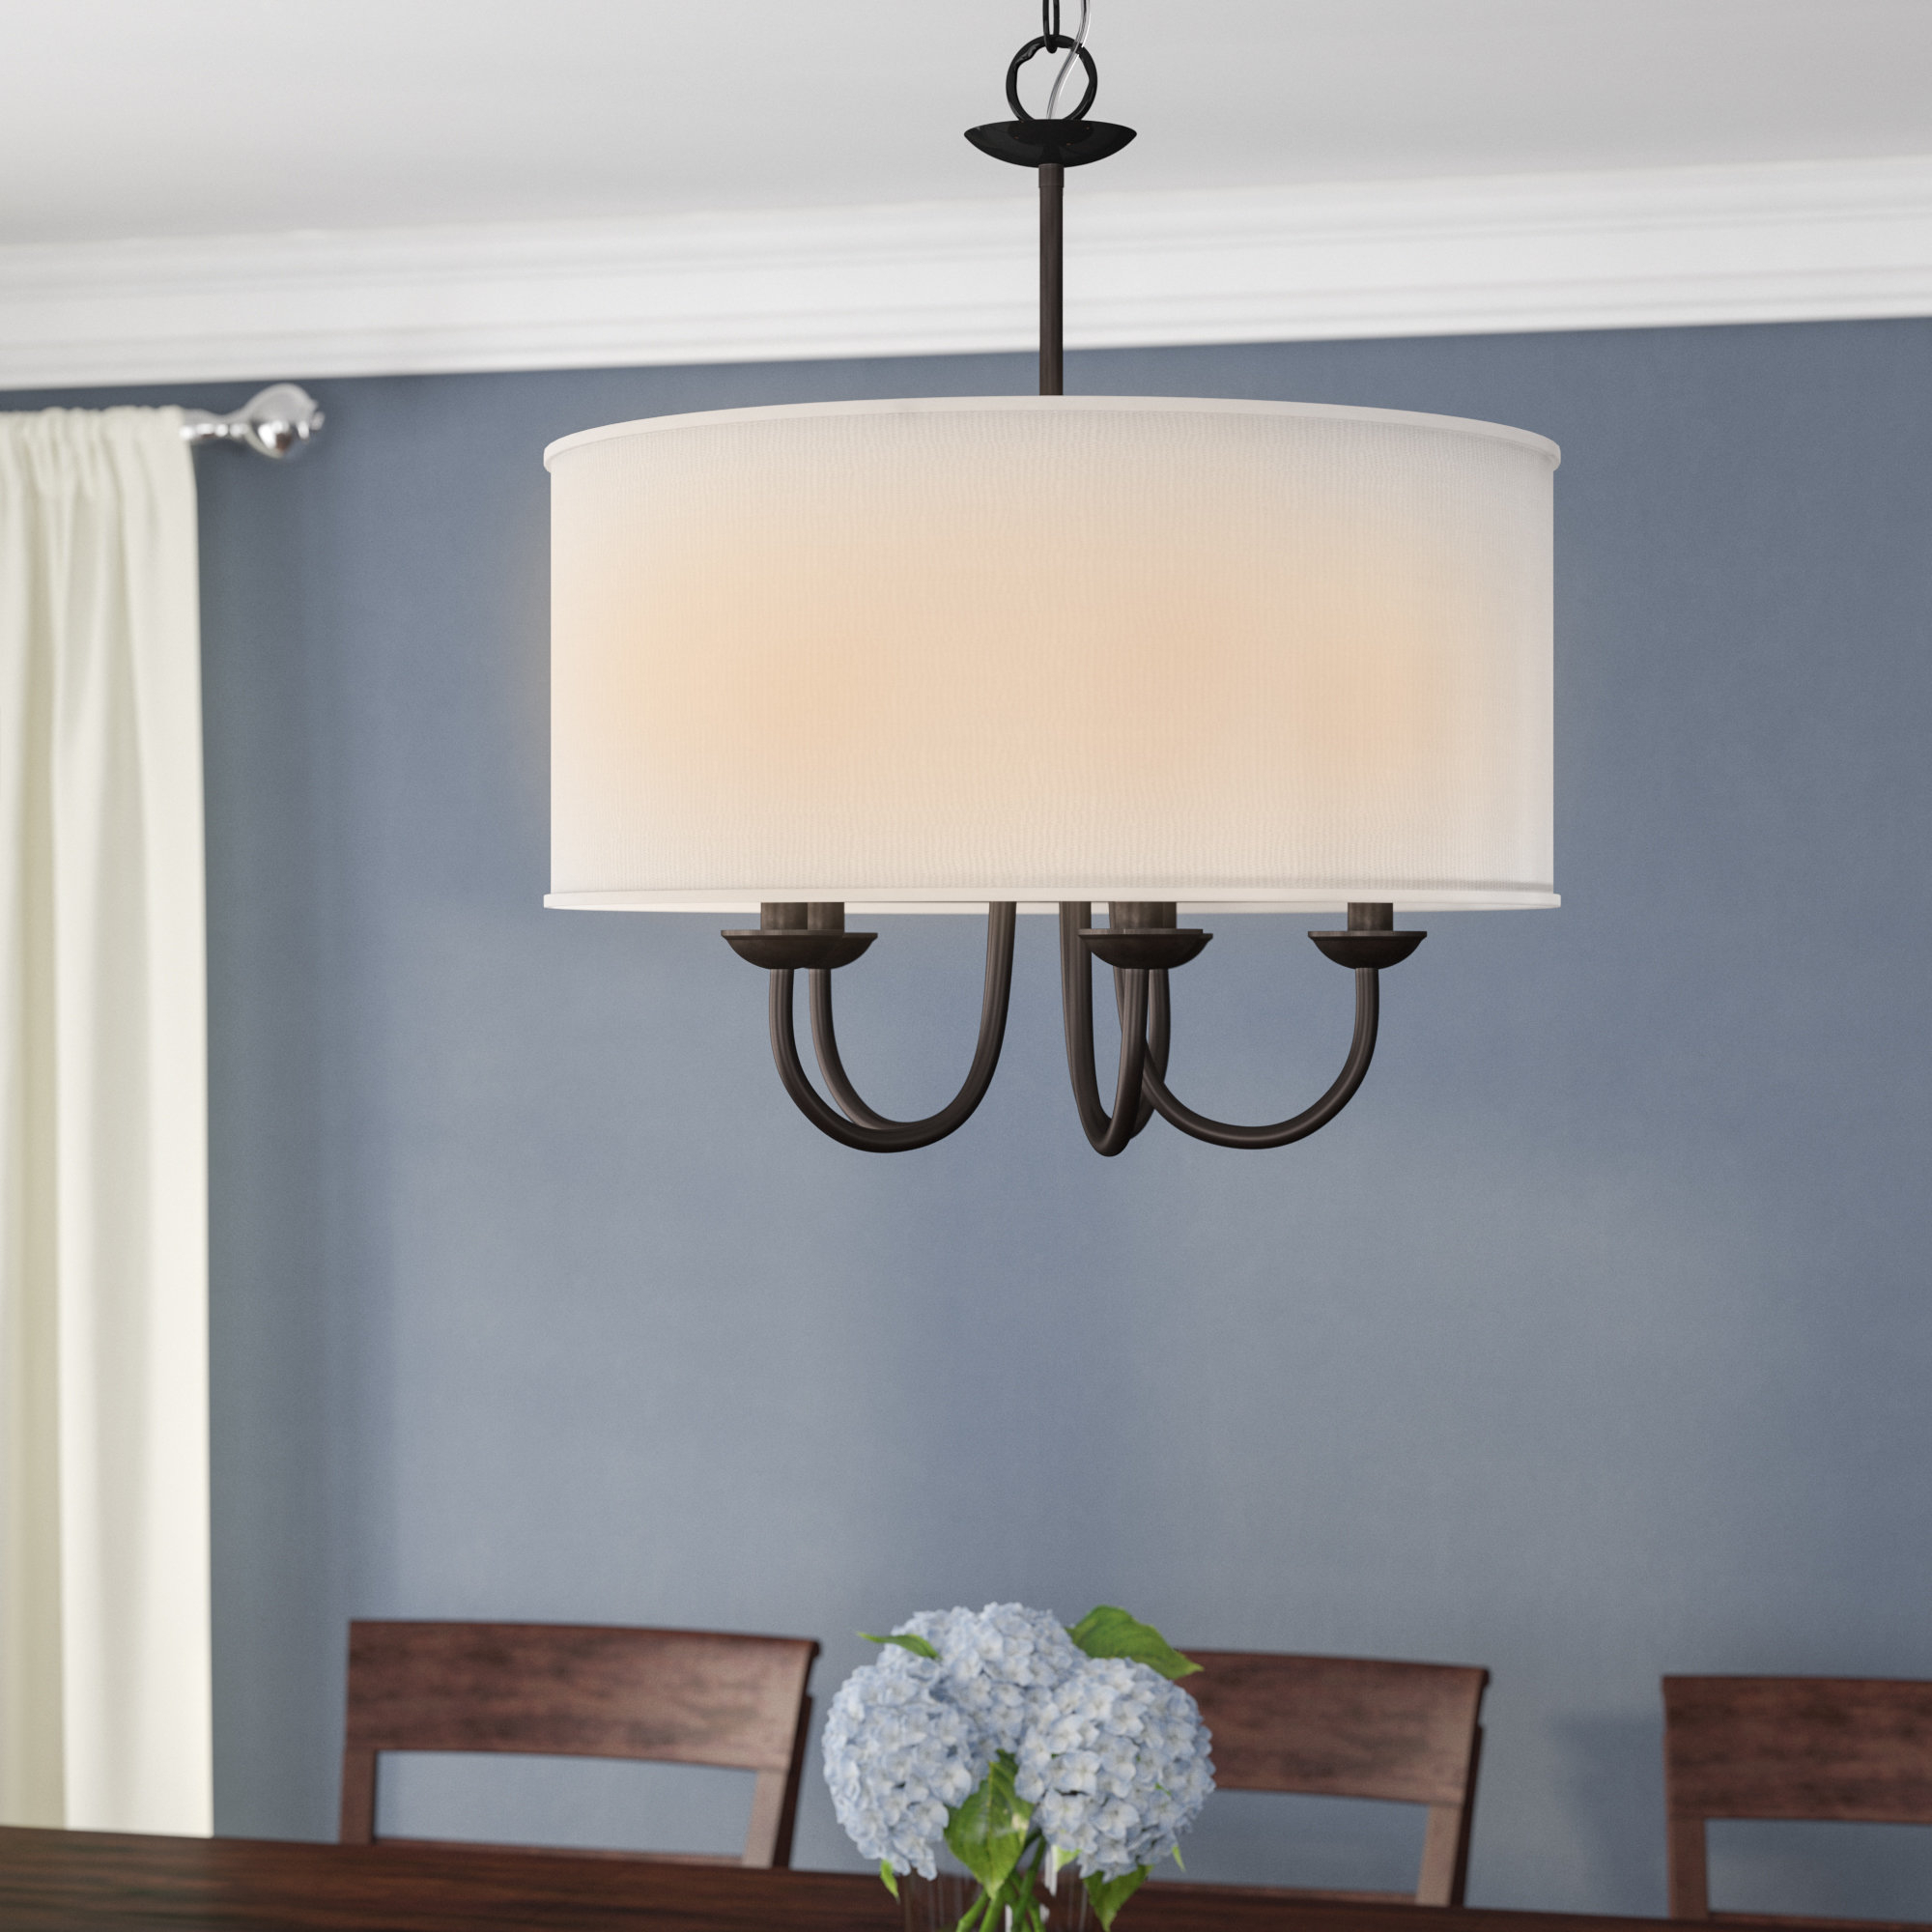 Sylvestre 5 Light Drum Chandelier In Best And Newest Harlan 5 Light Drum Chandeliers (View 8 of 25)